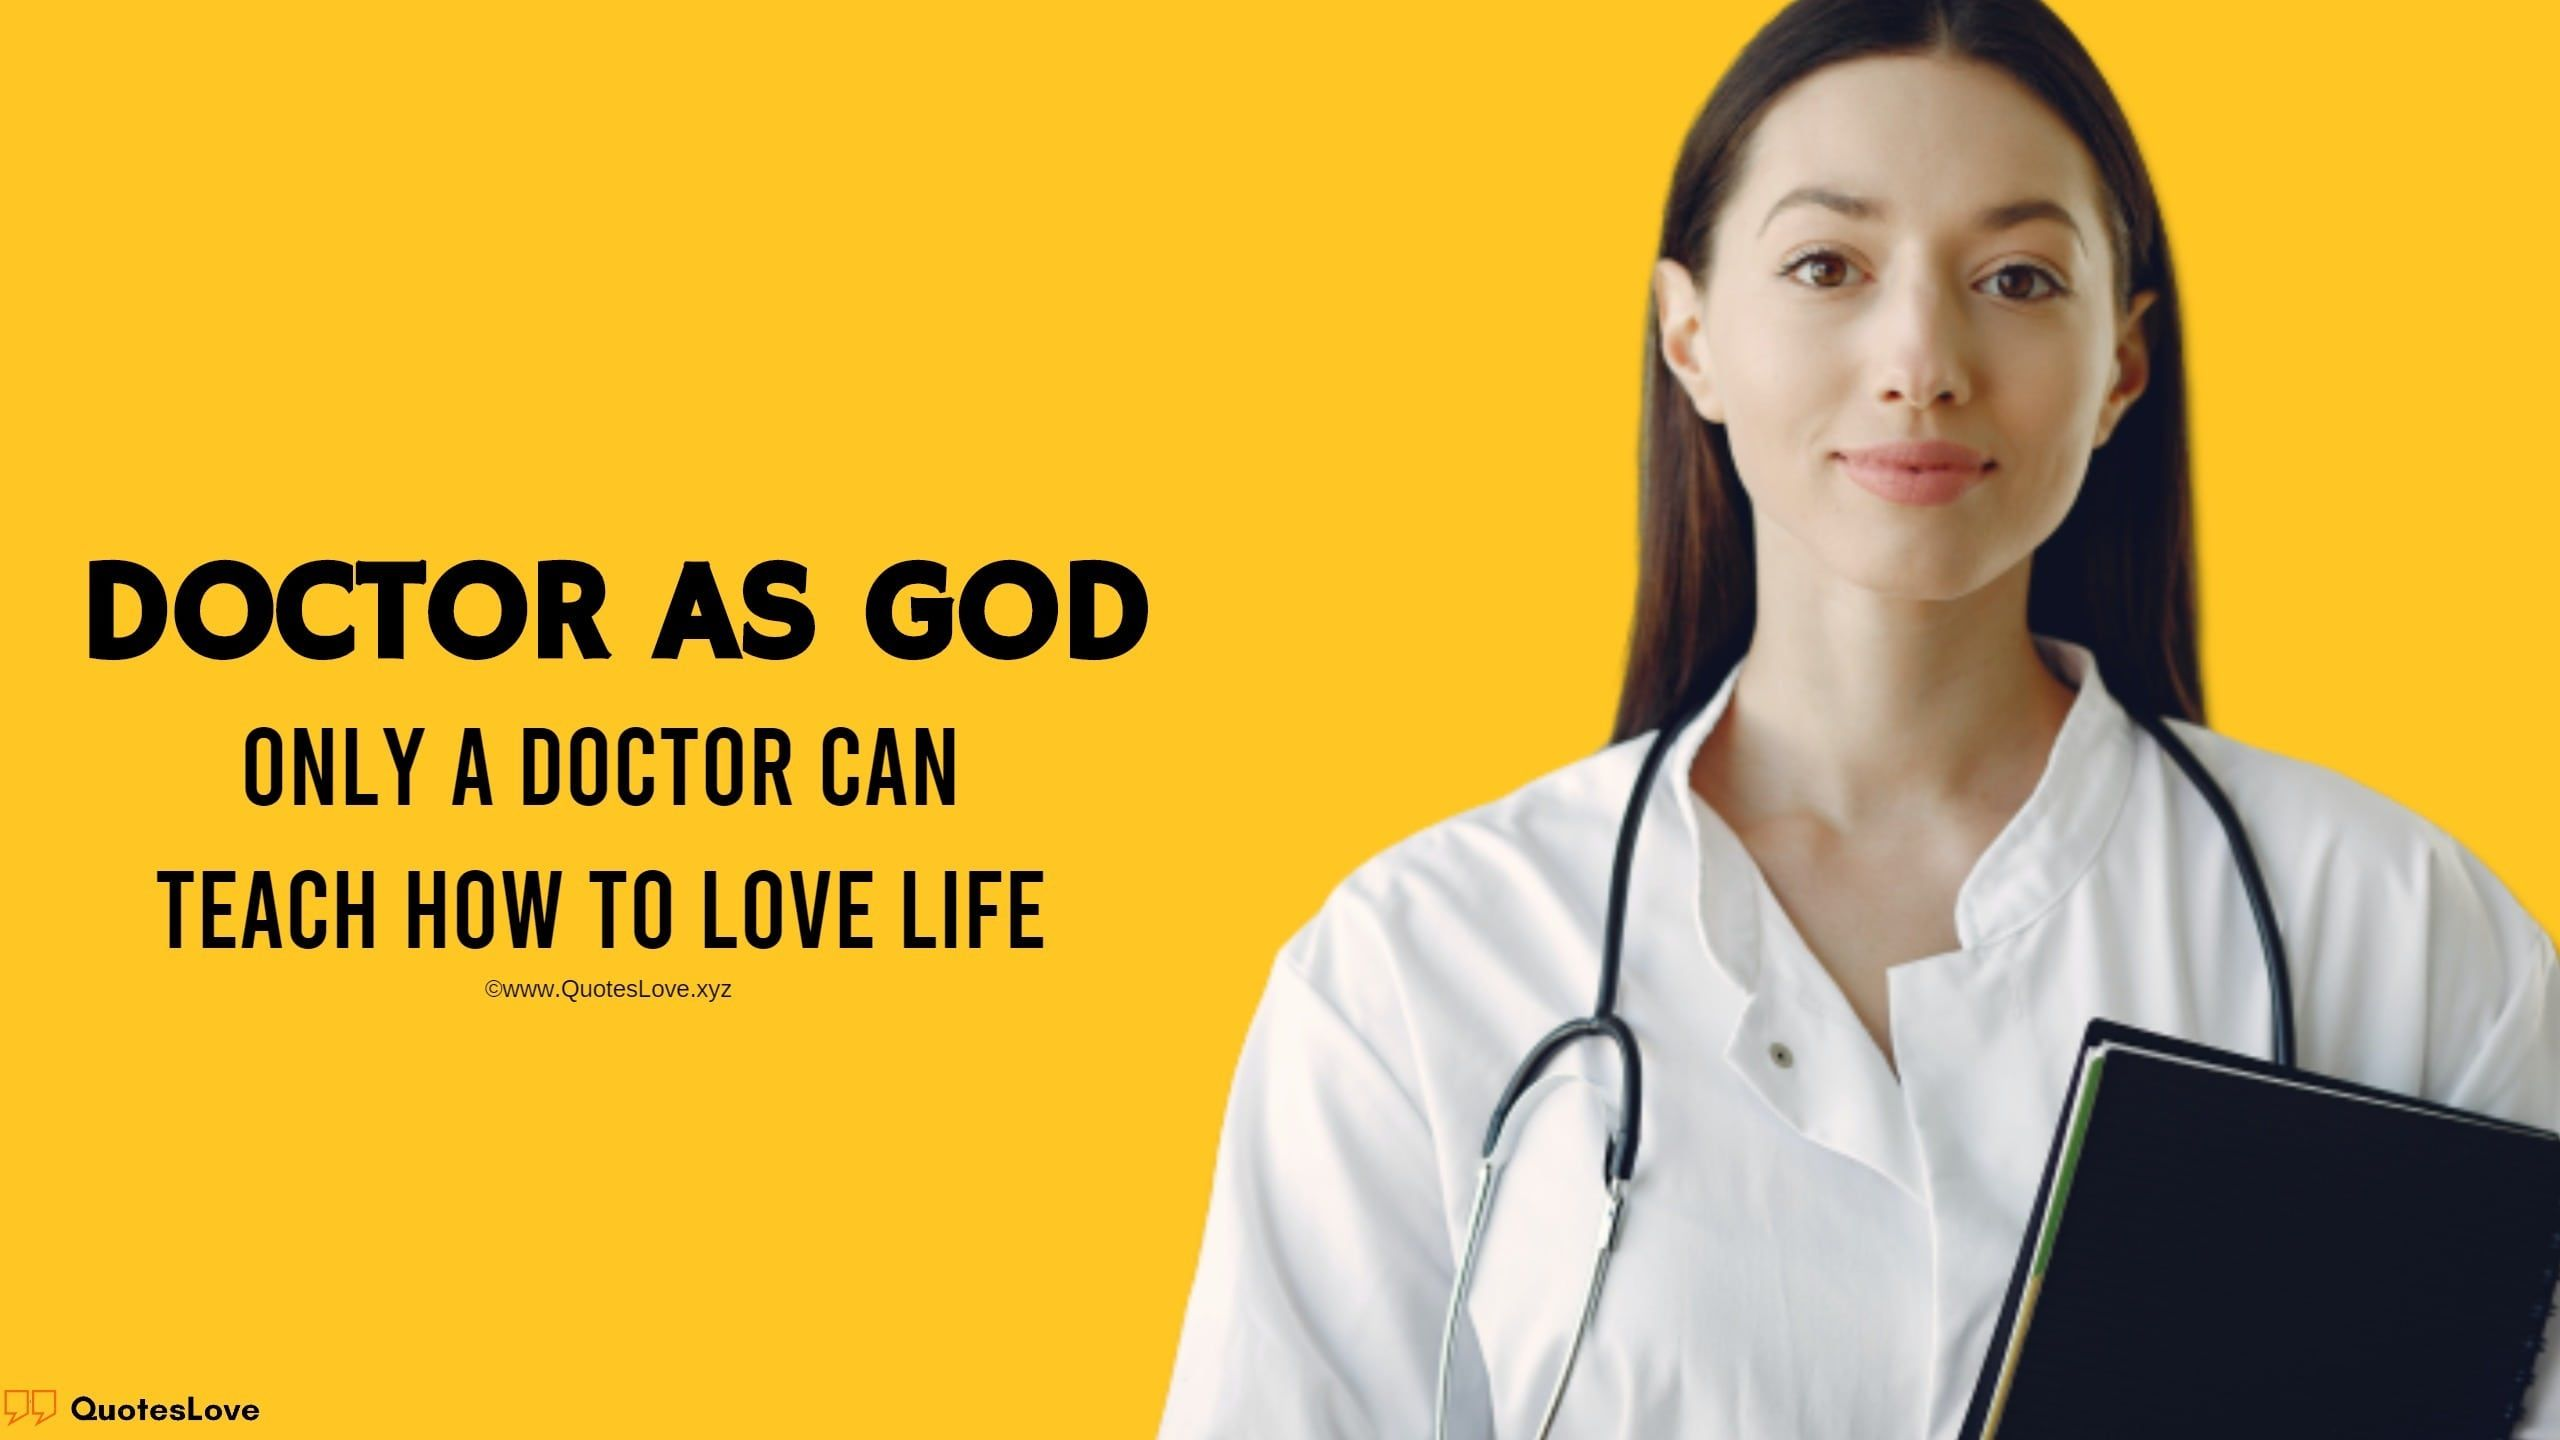 Best Doctor Quotes Funny Inspirational Thank To Doctor Quotes Doctor Quotes Doctor Good Doctor